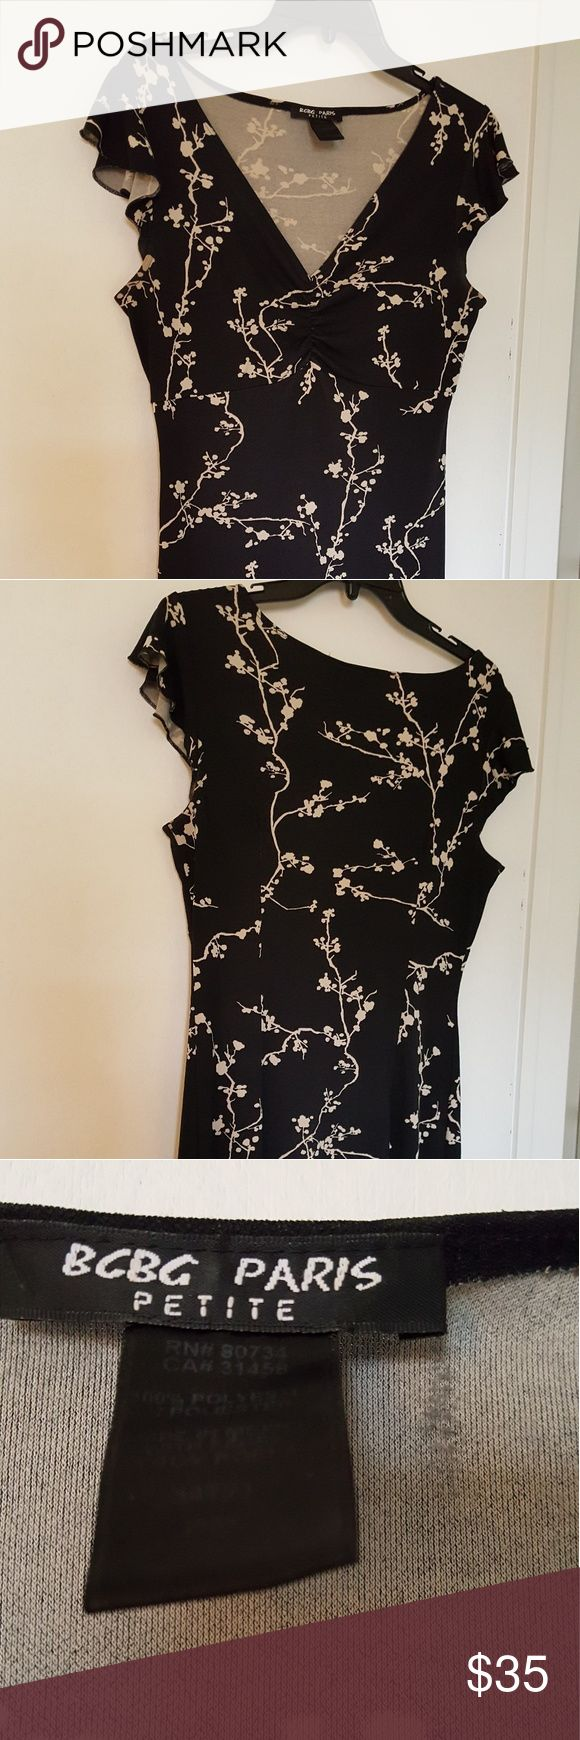 BCBG PARIS  PETITE DRESS You are looking at a BCBG petite dress  size PM. The fabric  is non wrinkle, low maintenance polyester material. 3 inch cap sleeves. Length  37 inches from back neck line. V-neck,  black and white pattern. Can be worn as a casual dress or dressed dress. BCBG Dresses